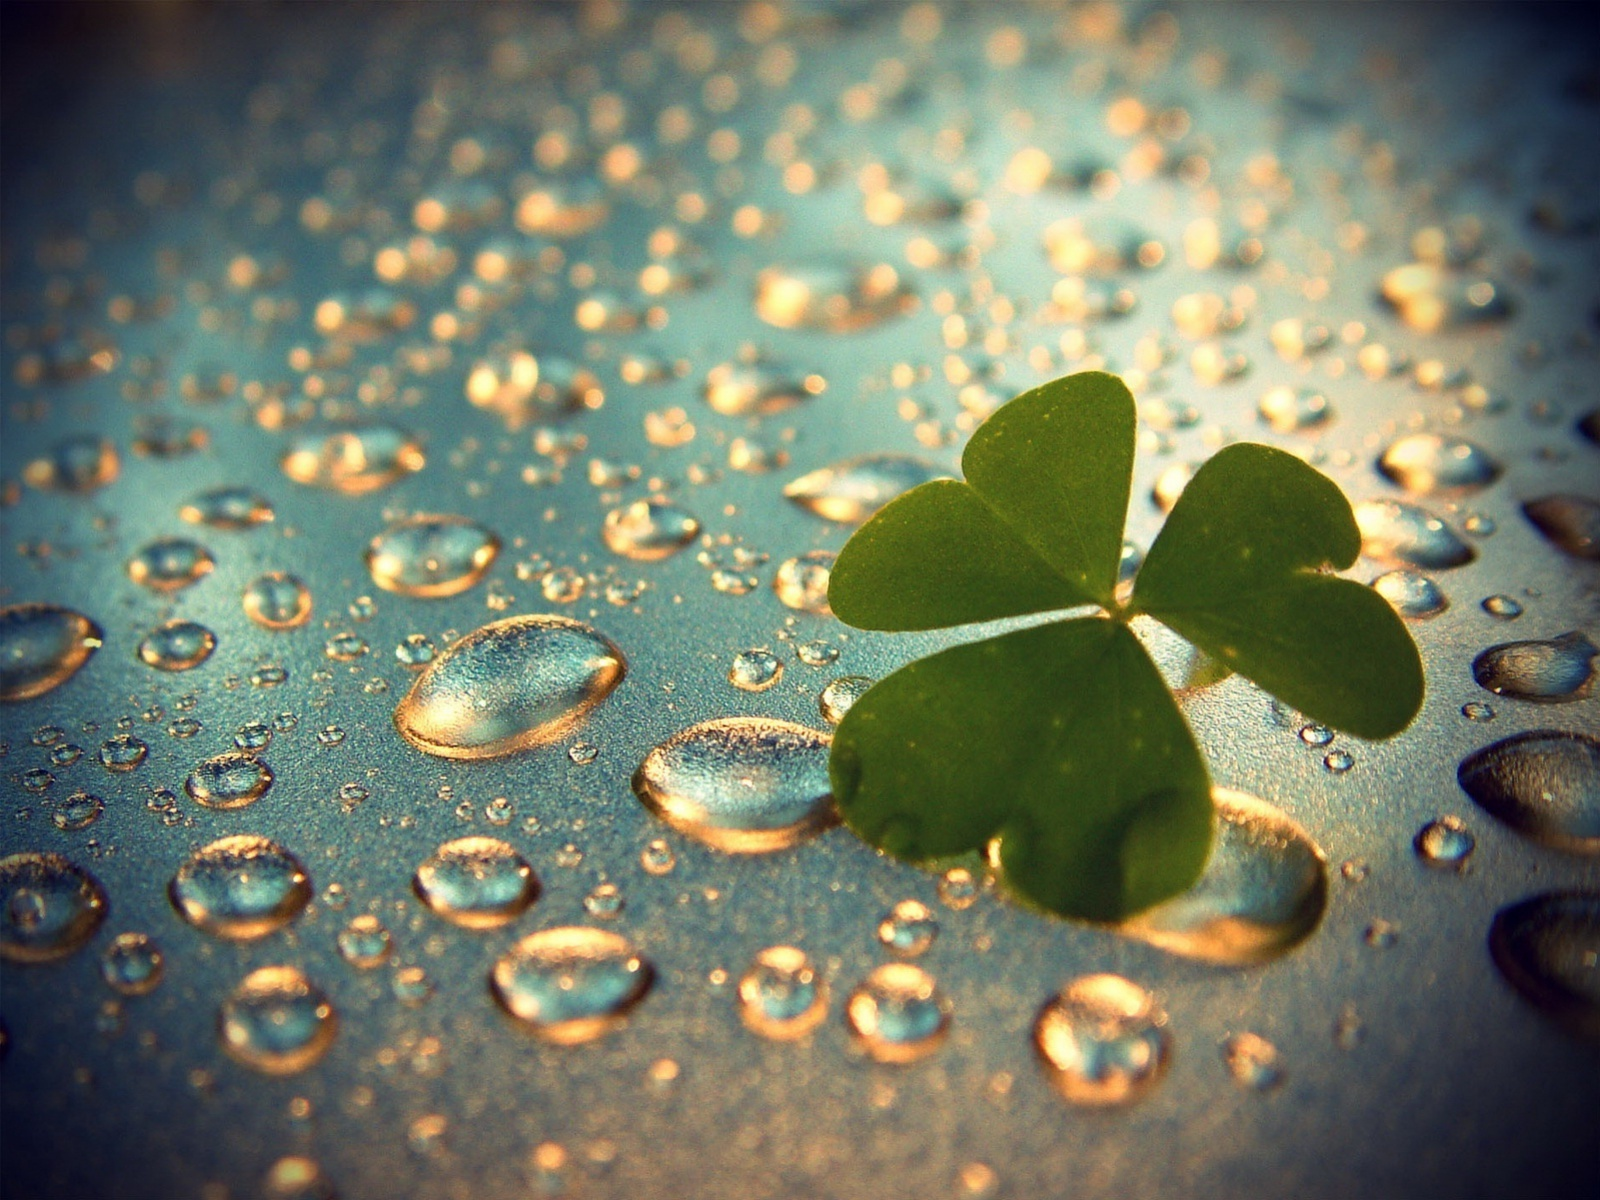 leaves on drops wallpaper